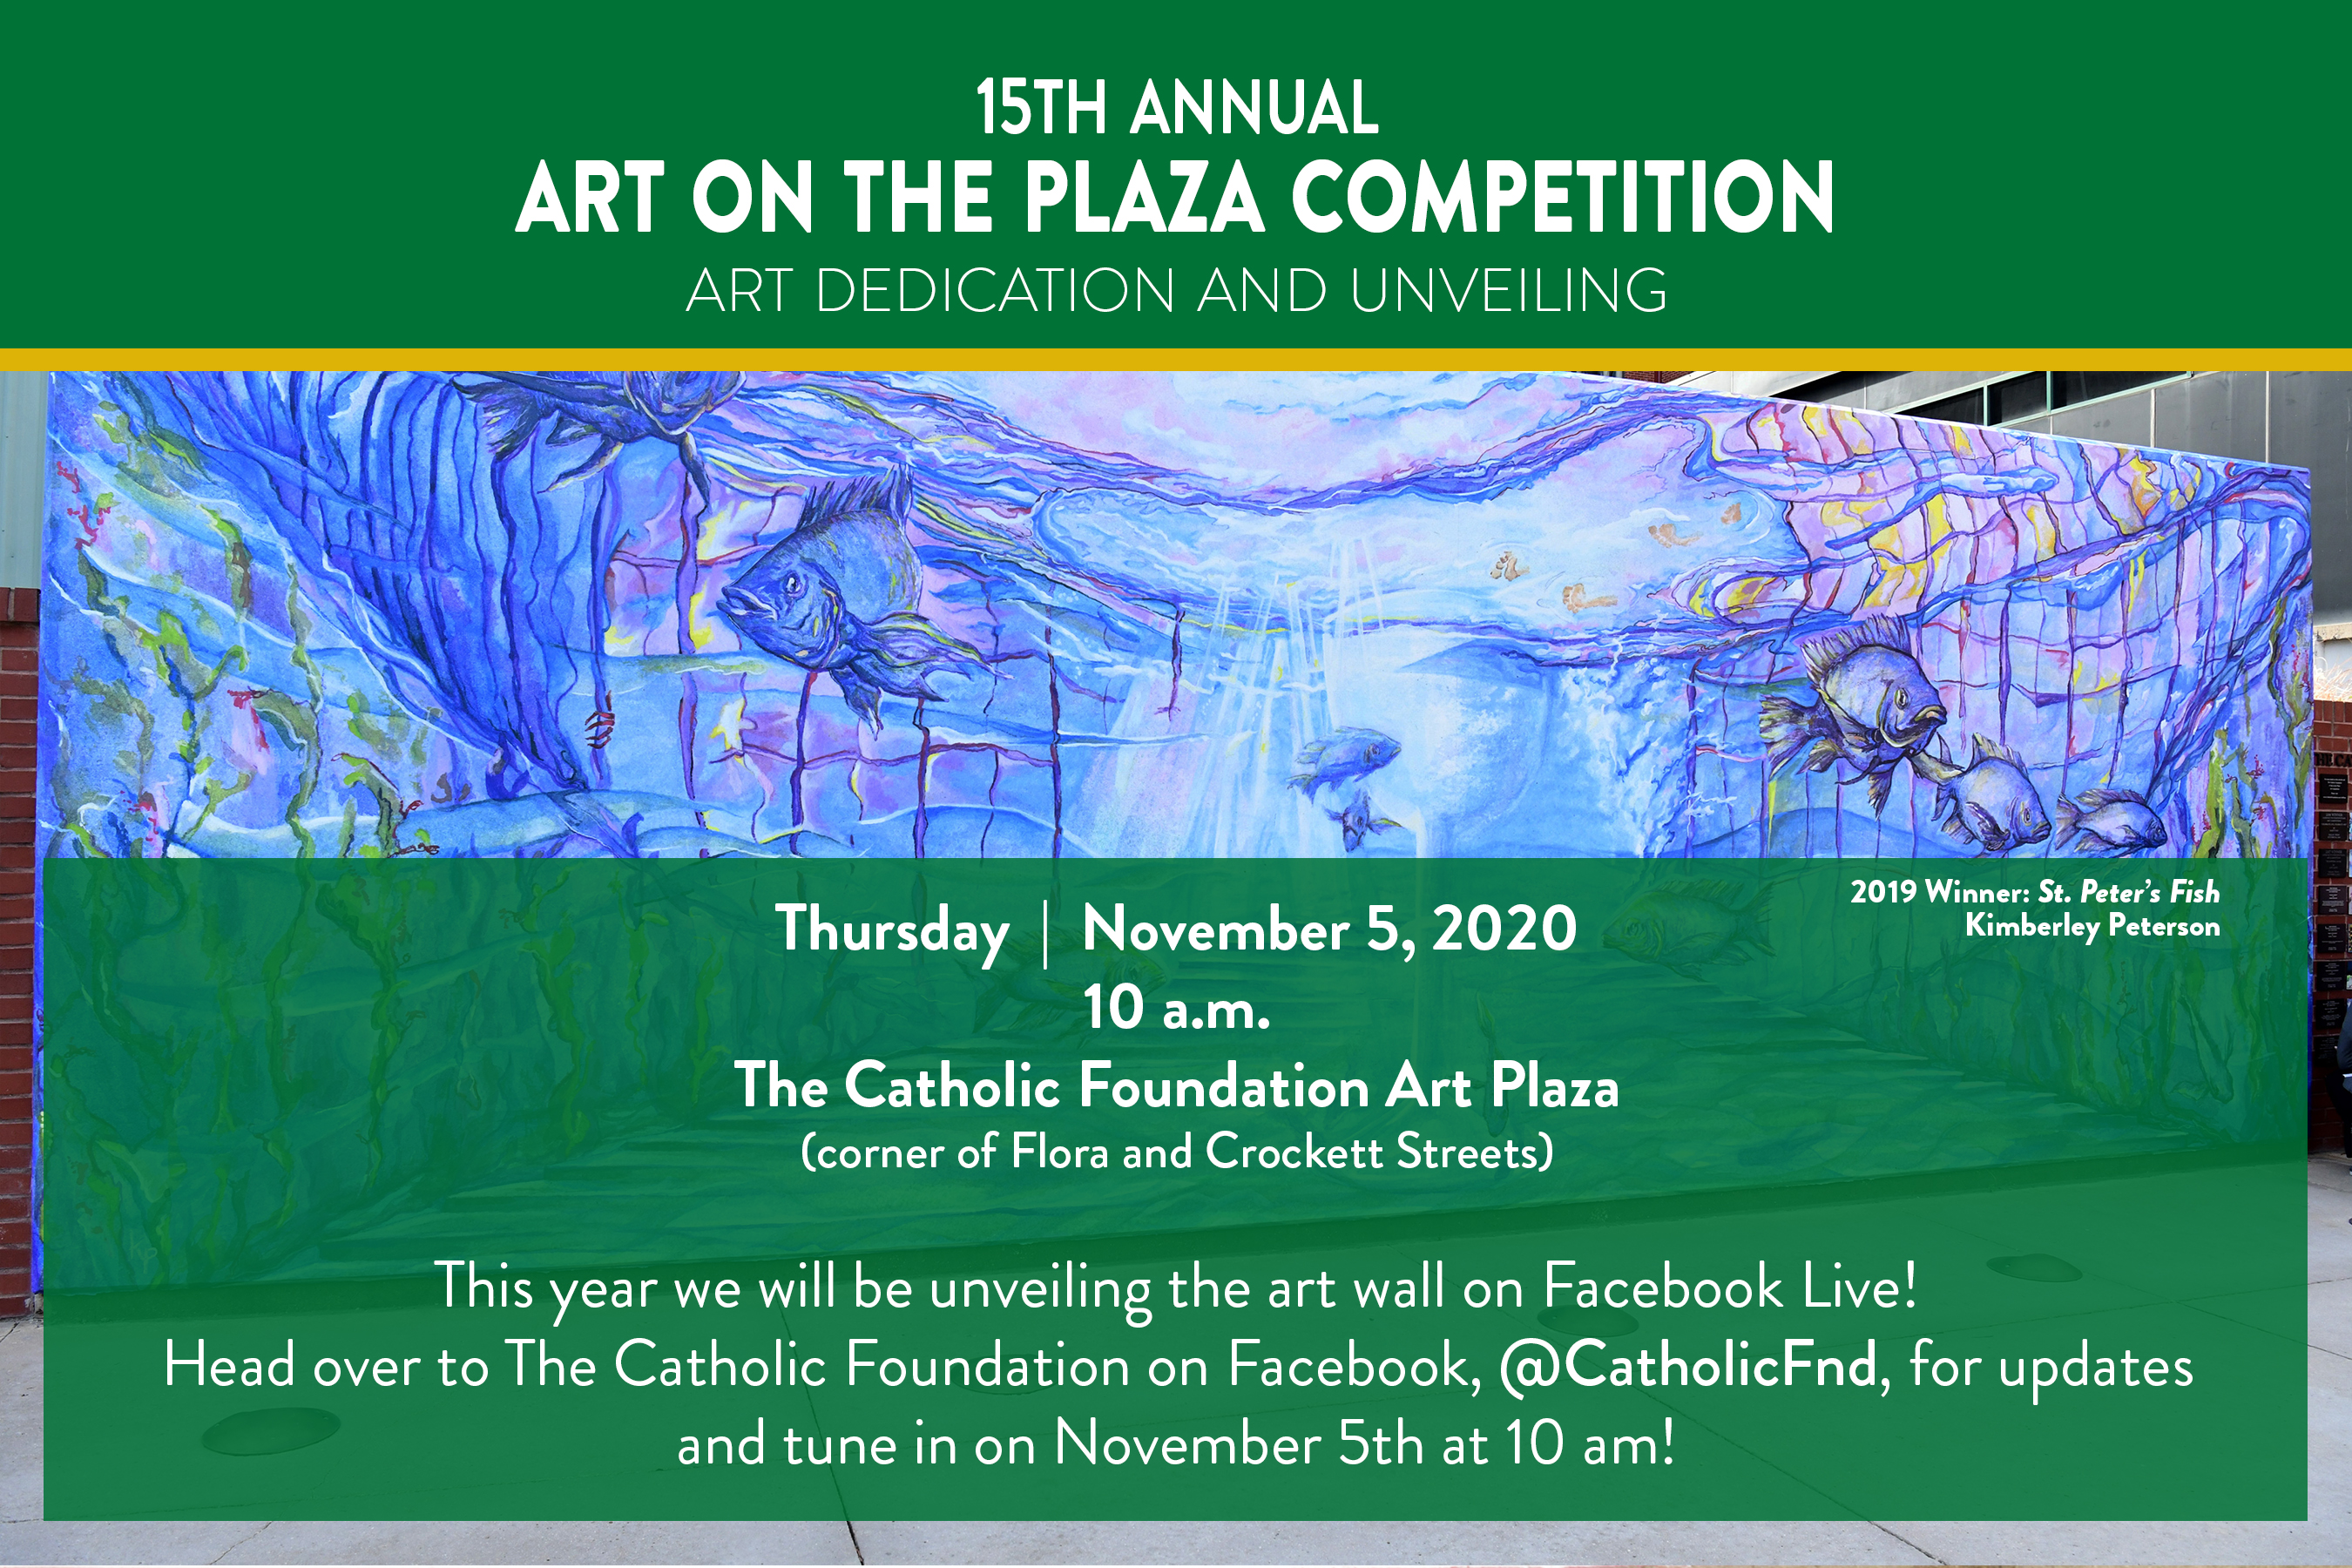 2020 Art Competition electronic invitation_10 20 20 copy.jpg